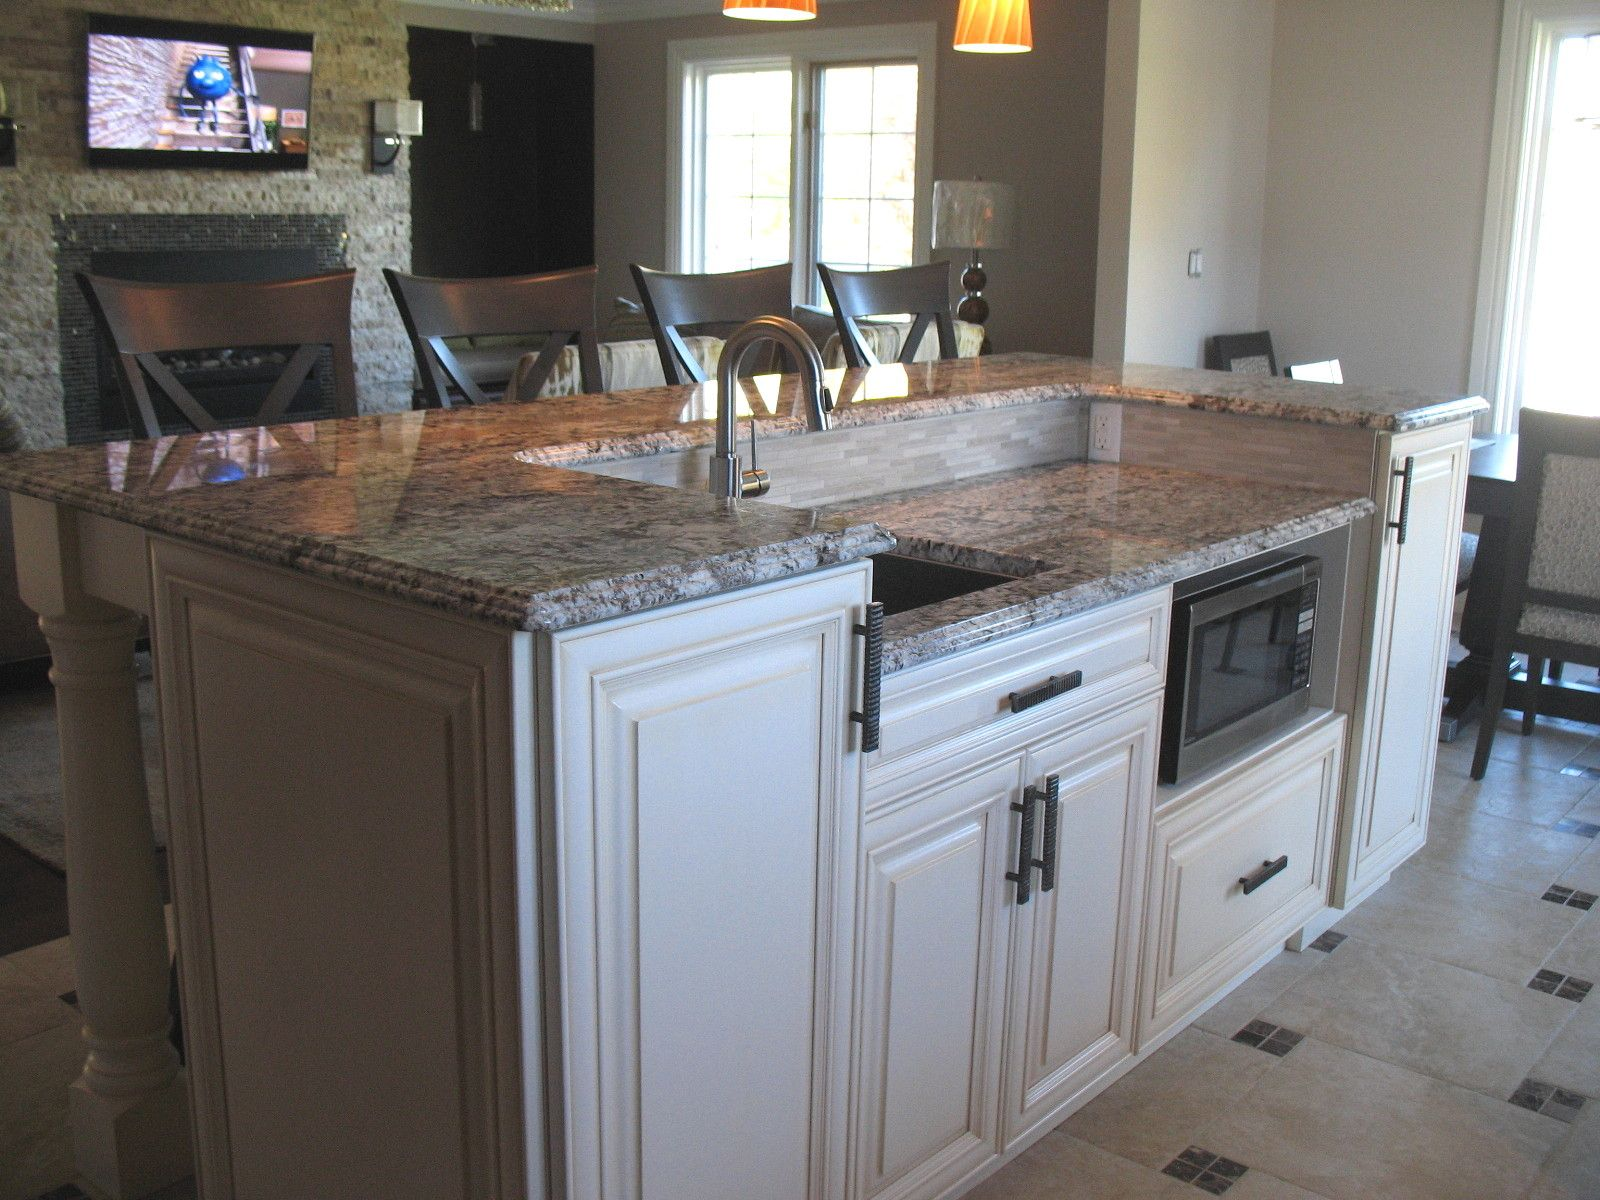 Chiefswood Classic kitchen with modern touches Two tiered